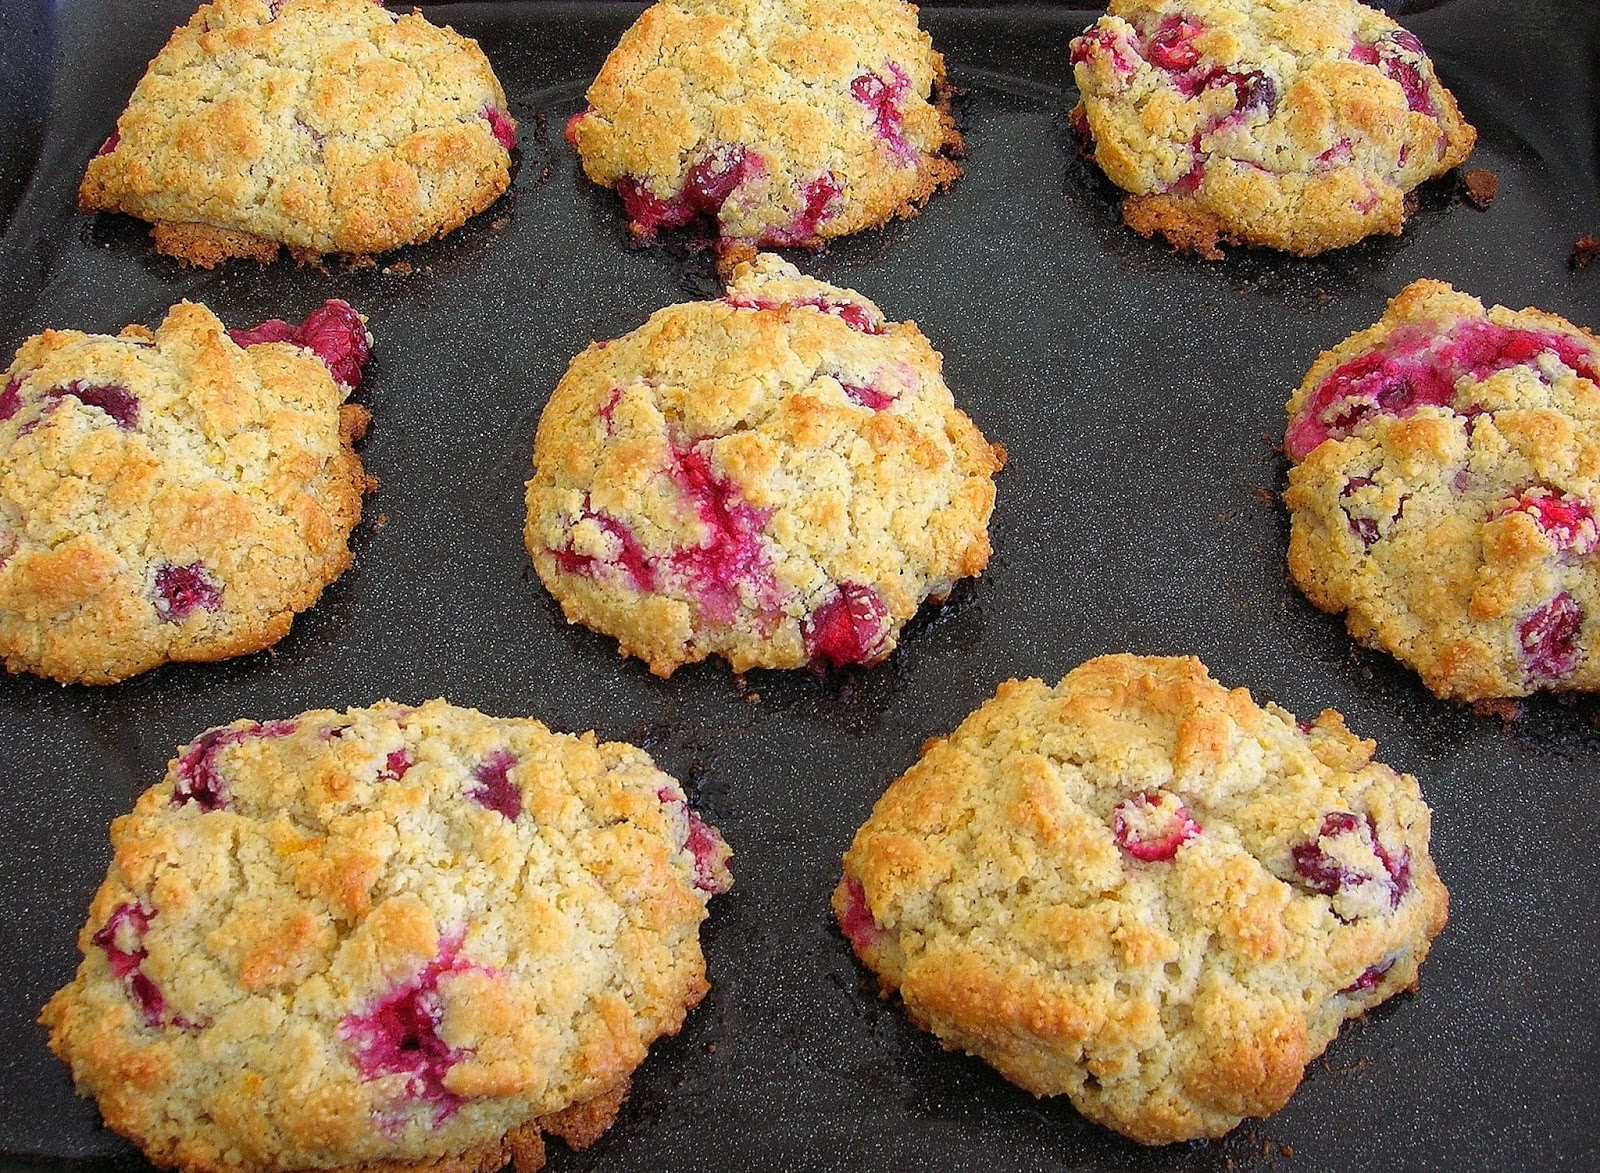 The scones turned out awesome. Tender with crisp edges and packed with ...